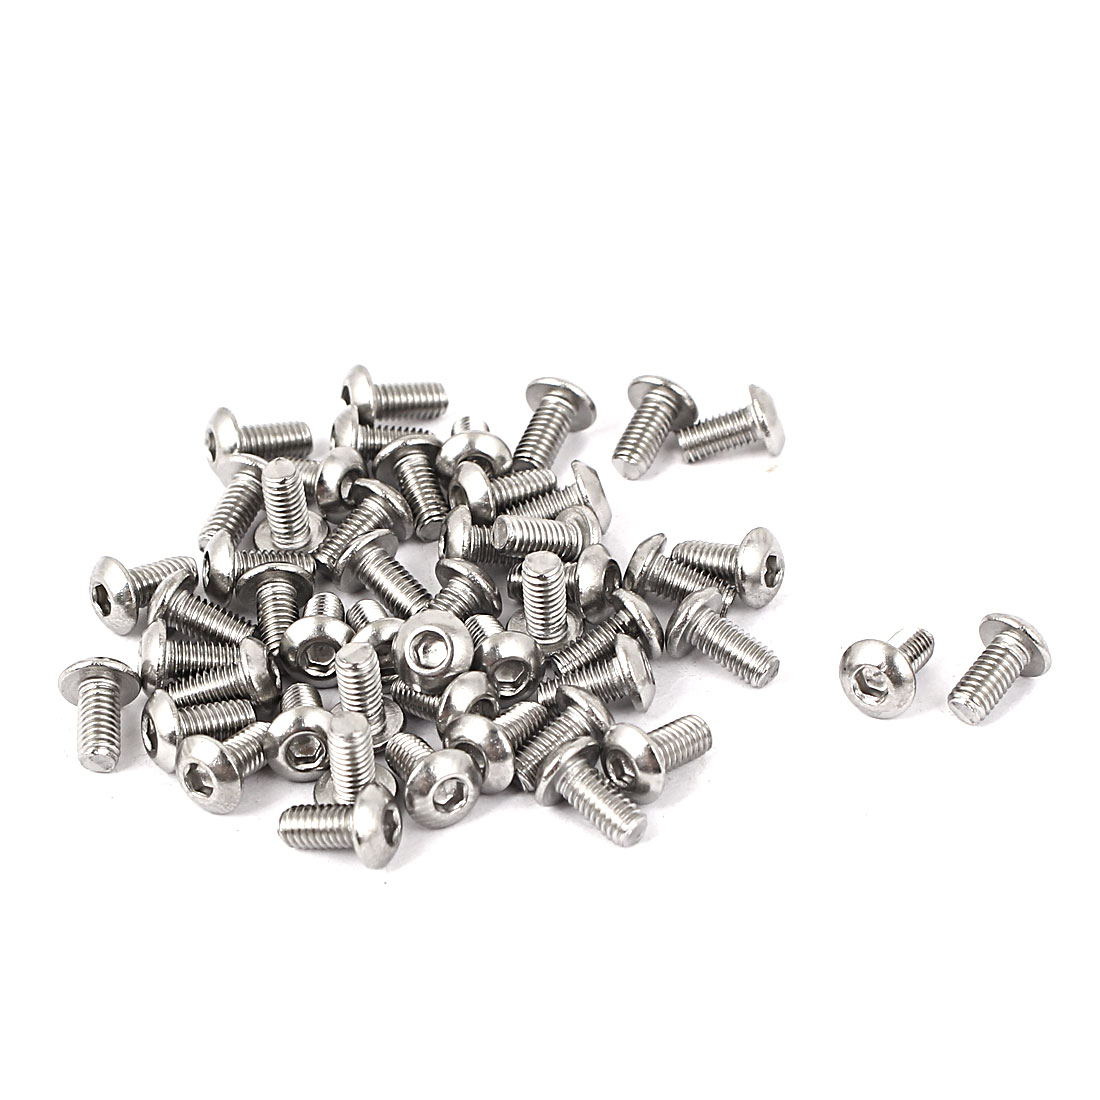 50 Pcs M3 x 6mm Silver Tone Stainless Steel Button Head Socket Cap Screw